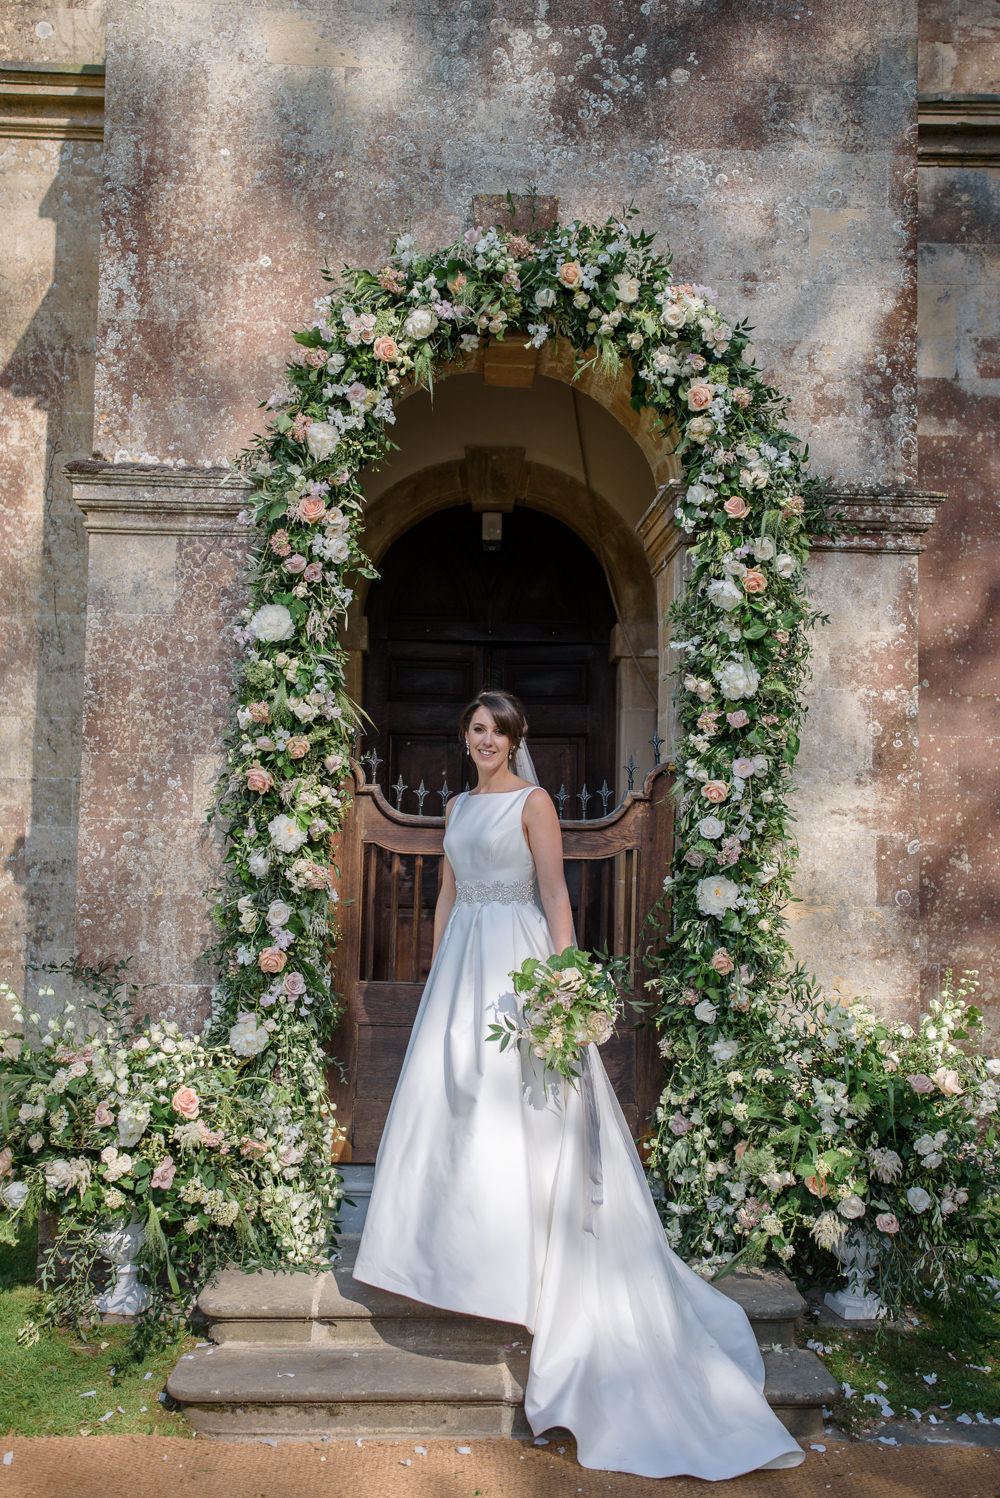 Bride Bridal A Line Dress Straps Sleeveless Silk Boat Neck Veil Entrance Archway Floral Flowers Bouquet Silk Ribbon Babington House Wedding Ria Mishaal Photography